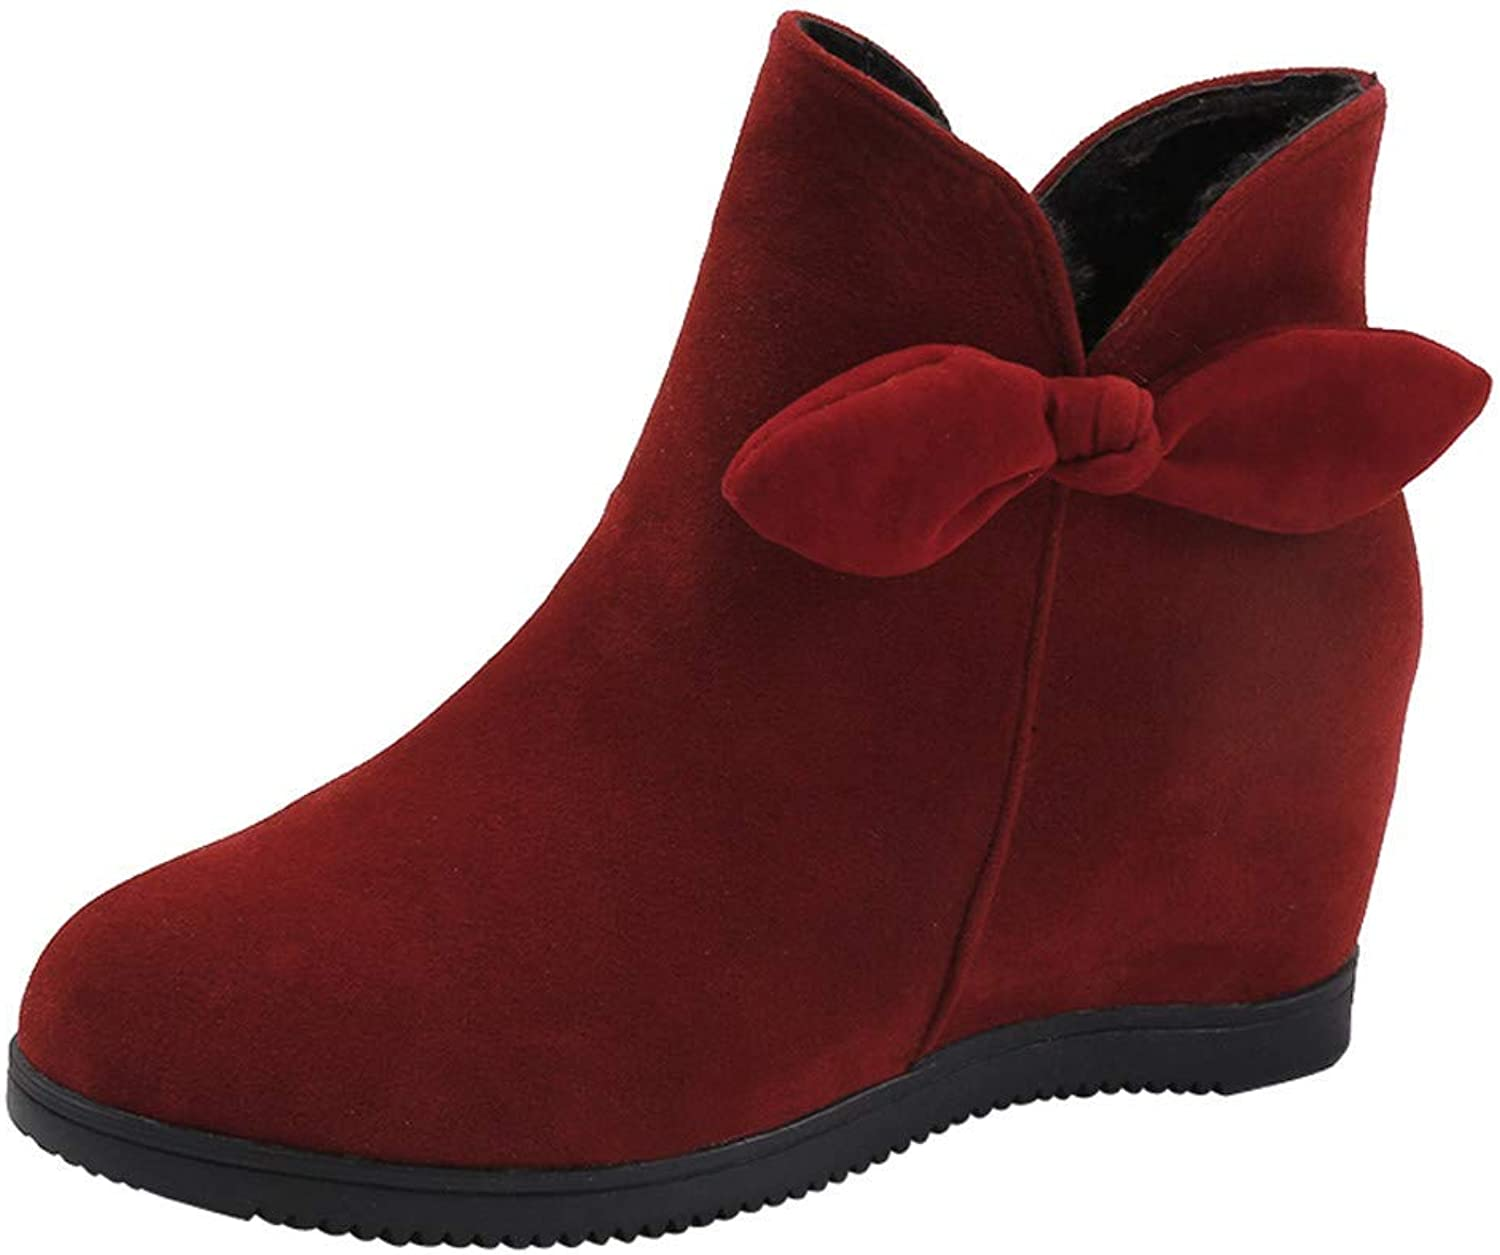 JaHGDU Women's Suede Bow Round Toe Wedges shoes Pure color shoes Zipper Martin Boots Solid color Increase Within shoes